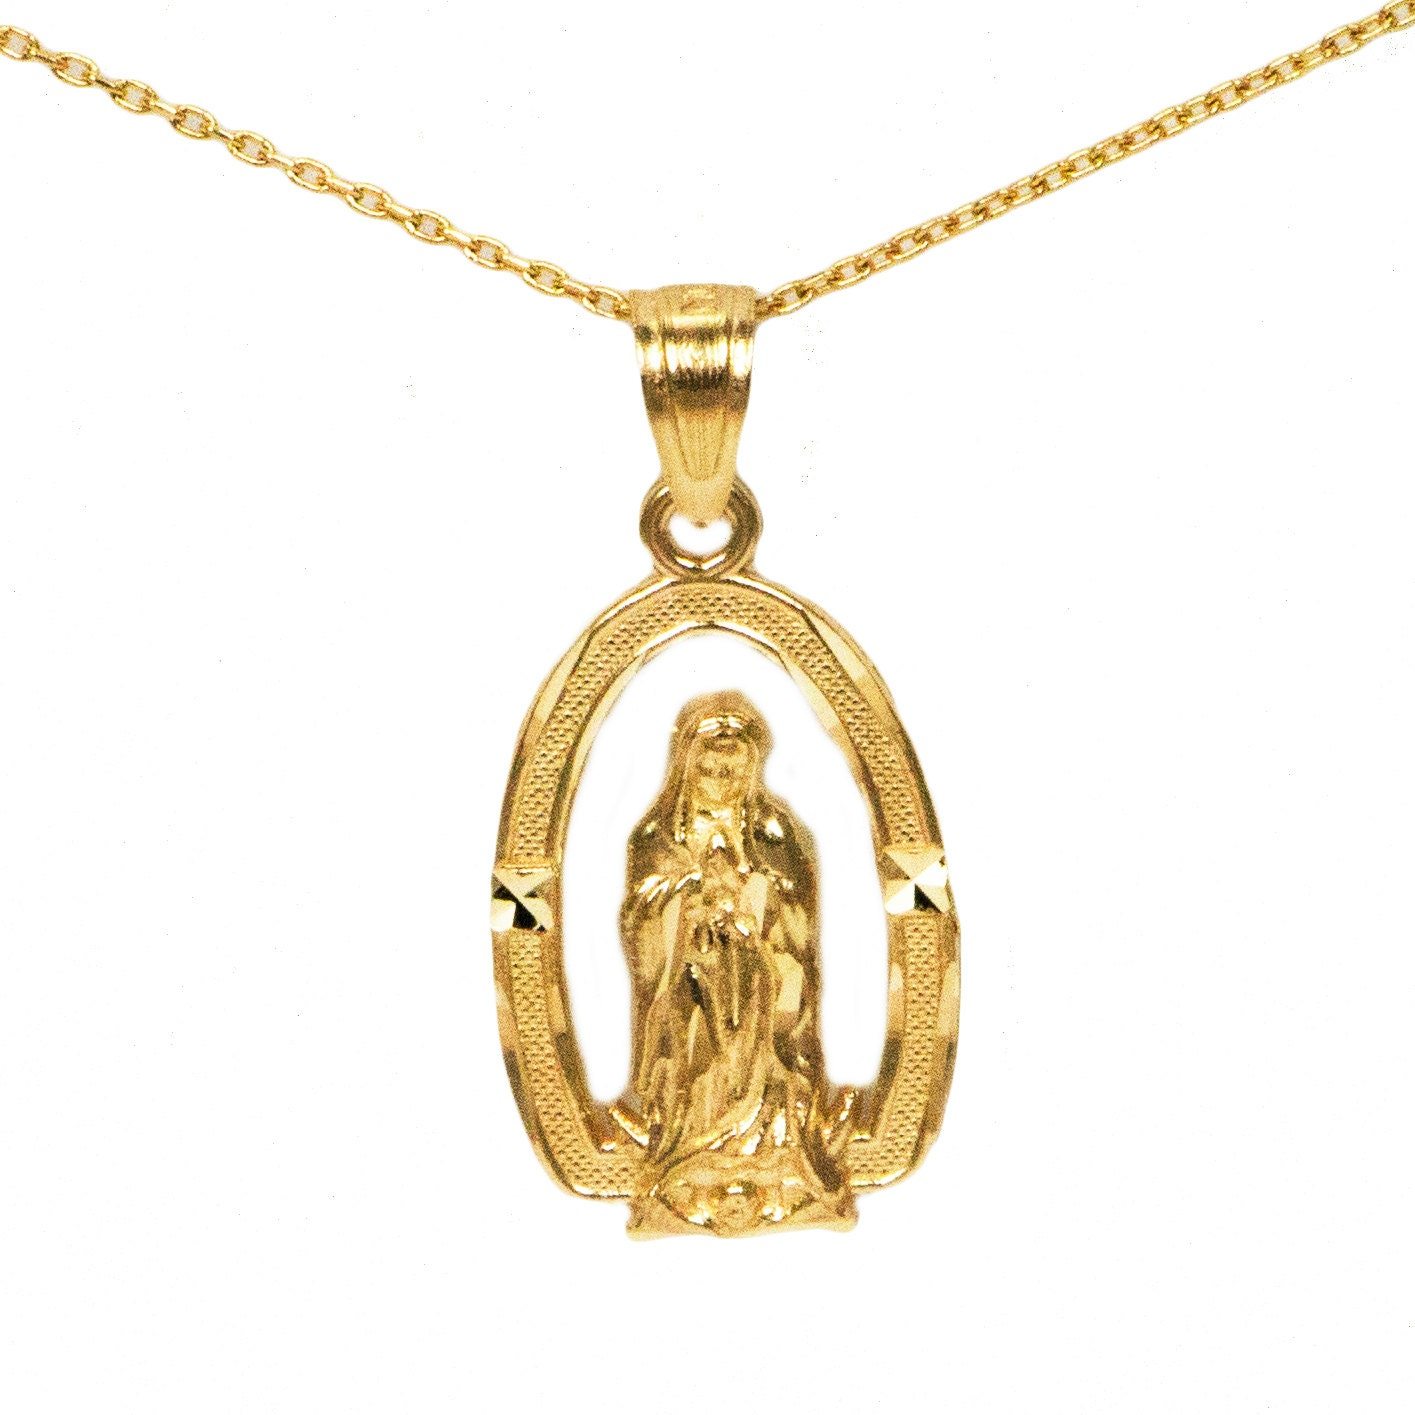 10k yellow gold virgin mary necklace